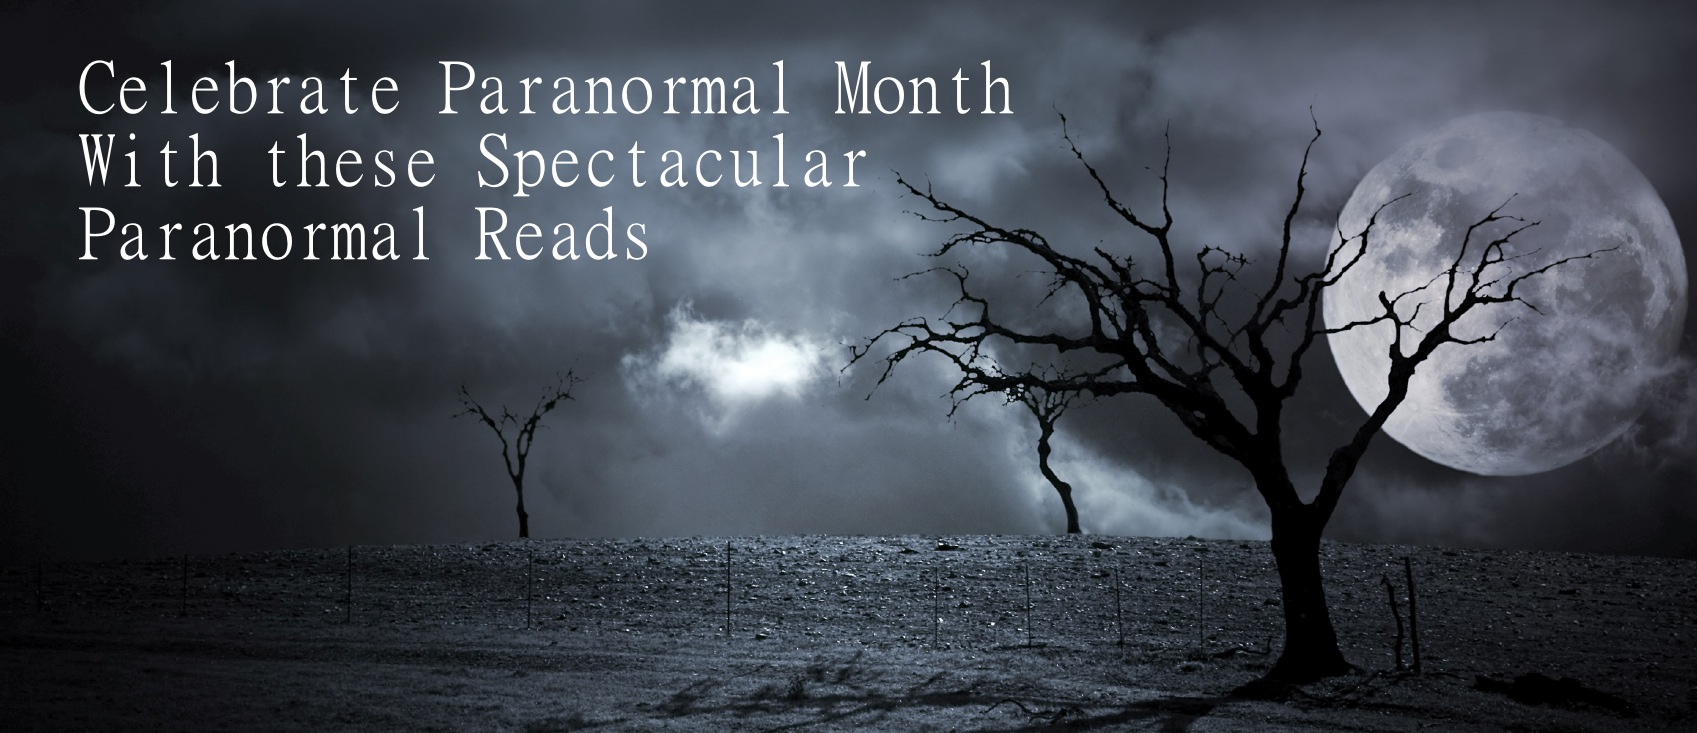 Halloween Landscape: Celebrate Paranormal Month with Beth Barany's Touchstone of Love